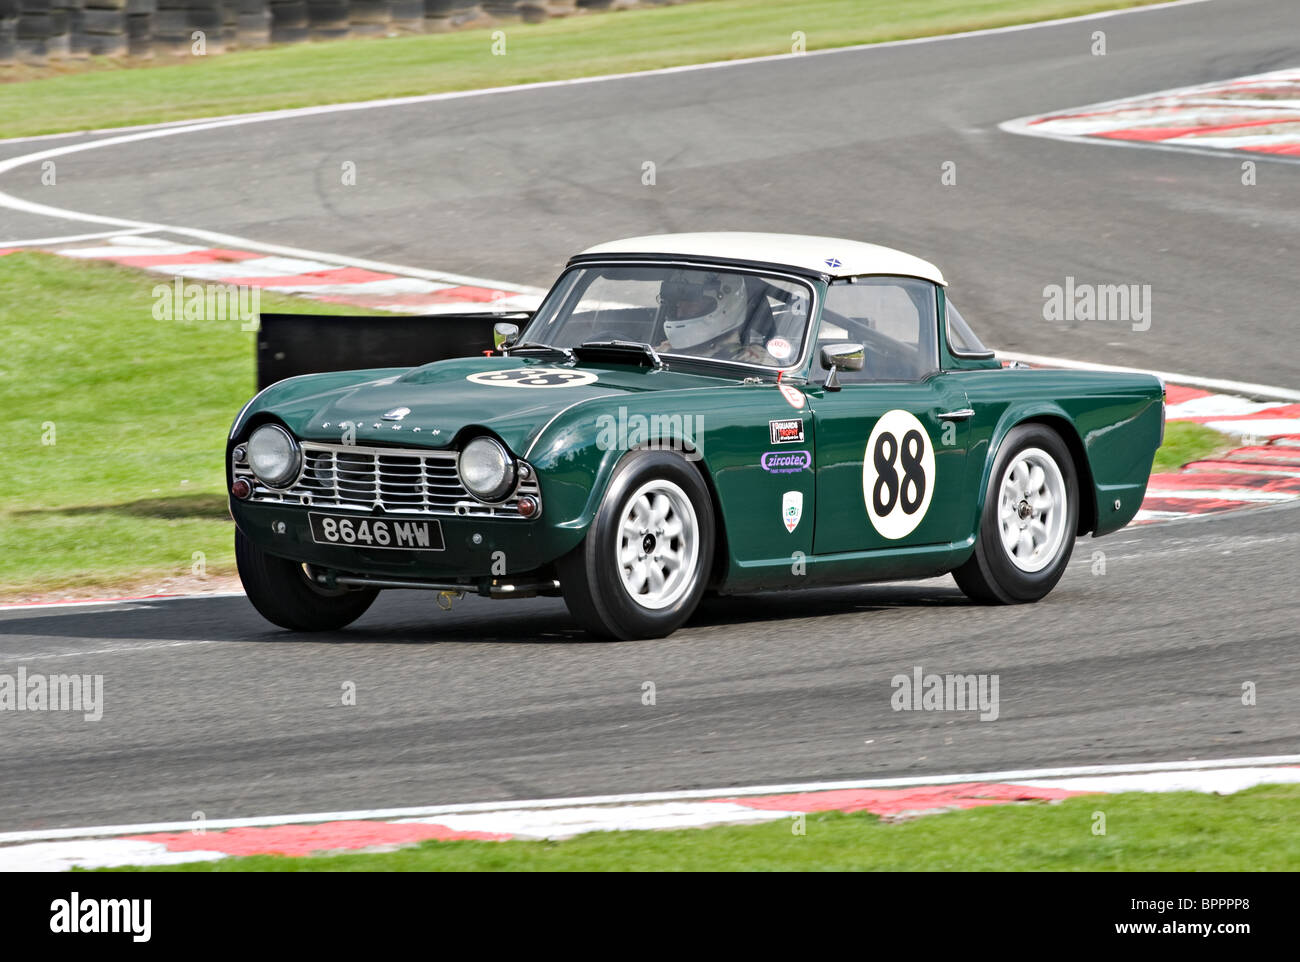 Triumph Tr4 Race Car Negotiates Brittens At Oulton Park Motor Racing